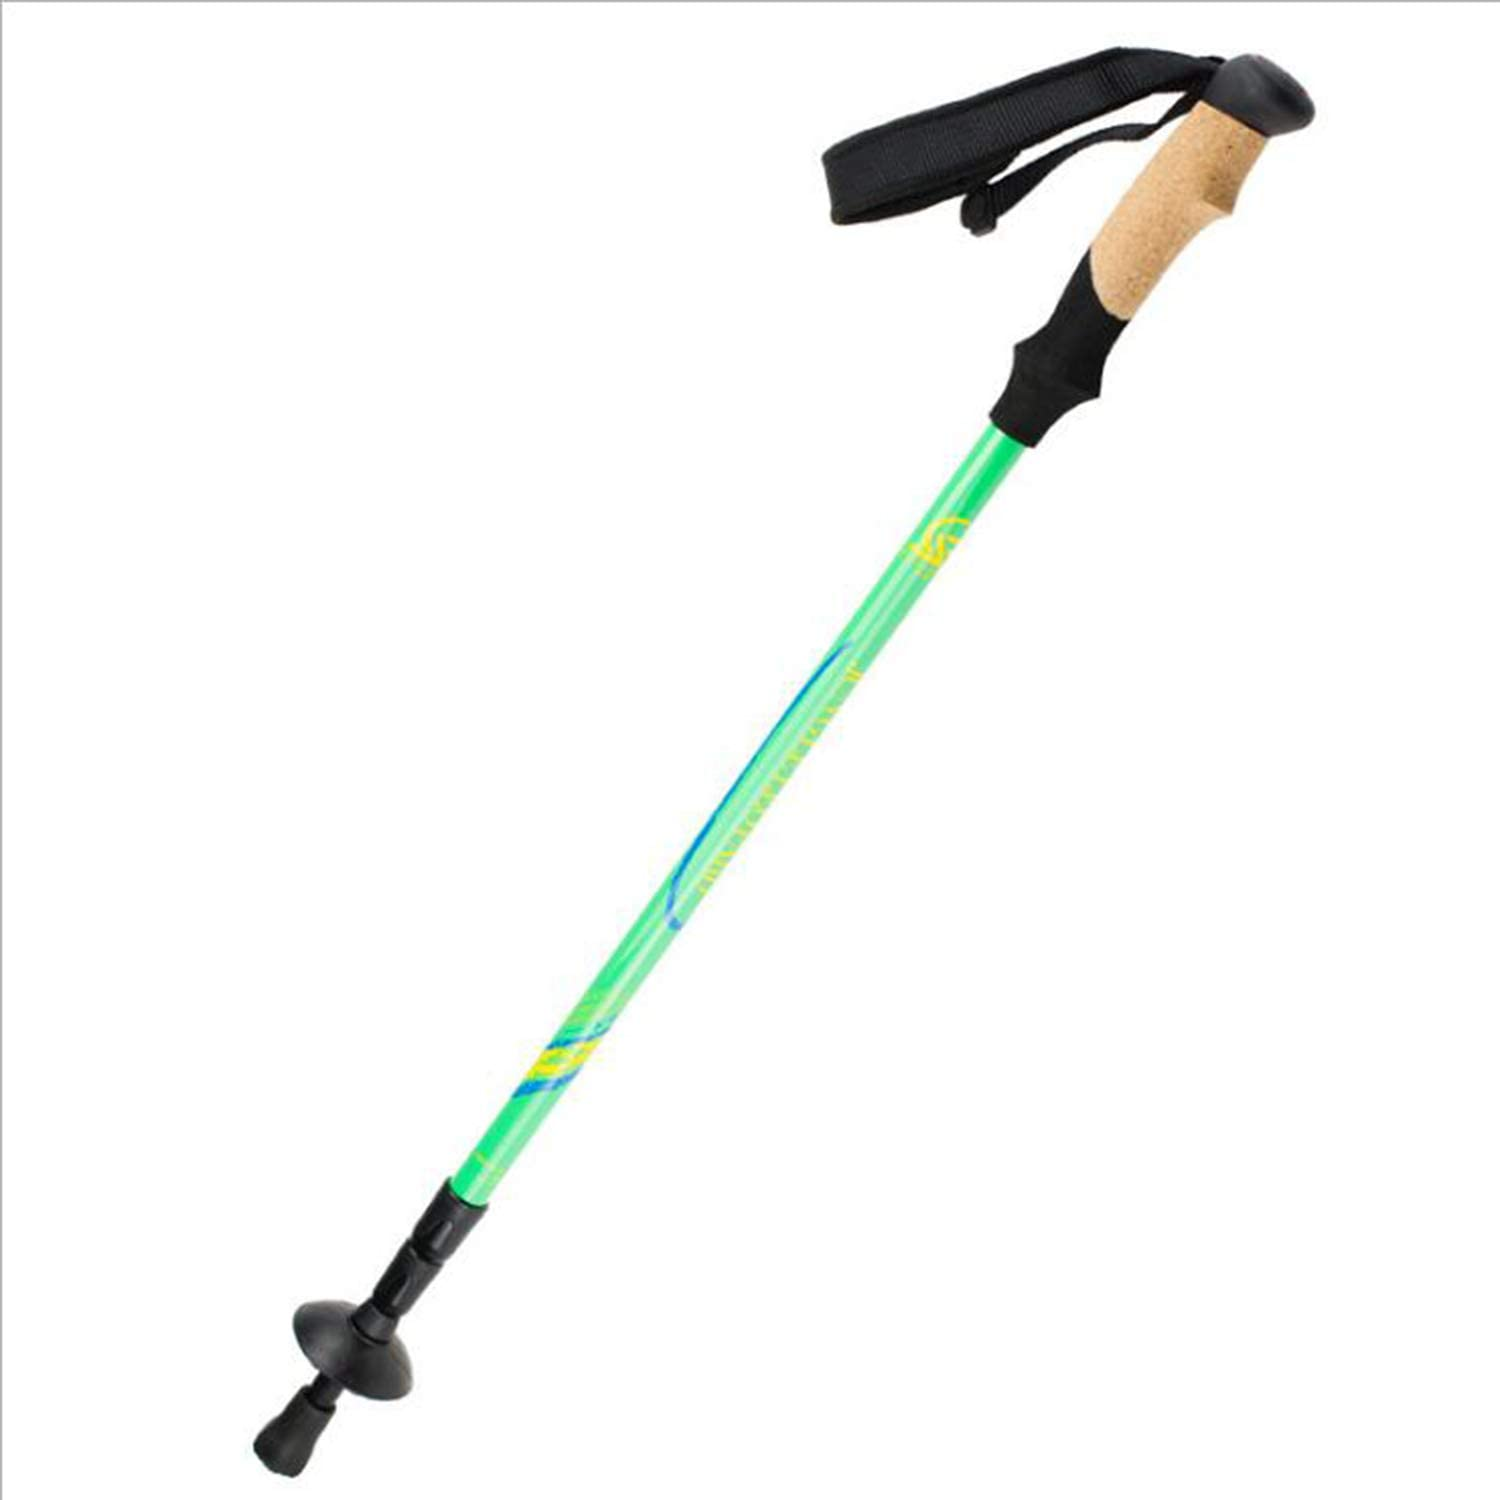 Trekking Poles Light 50% Carbon, with A Straight Handle EVA Cork Trekking Poles, Ski Poles, Good Toughness, 3SL Locking System, Extendable,1 Pieces 65135cm